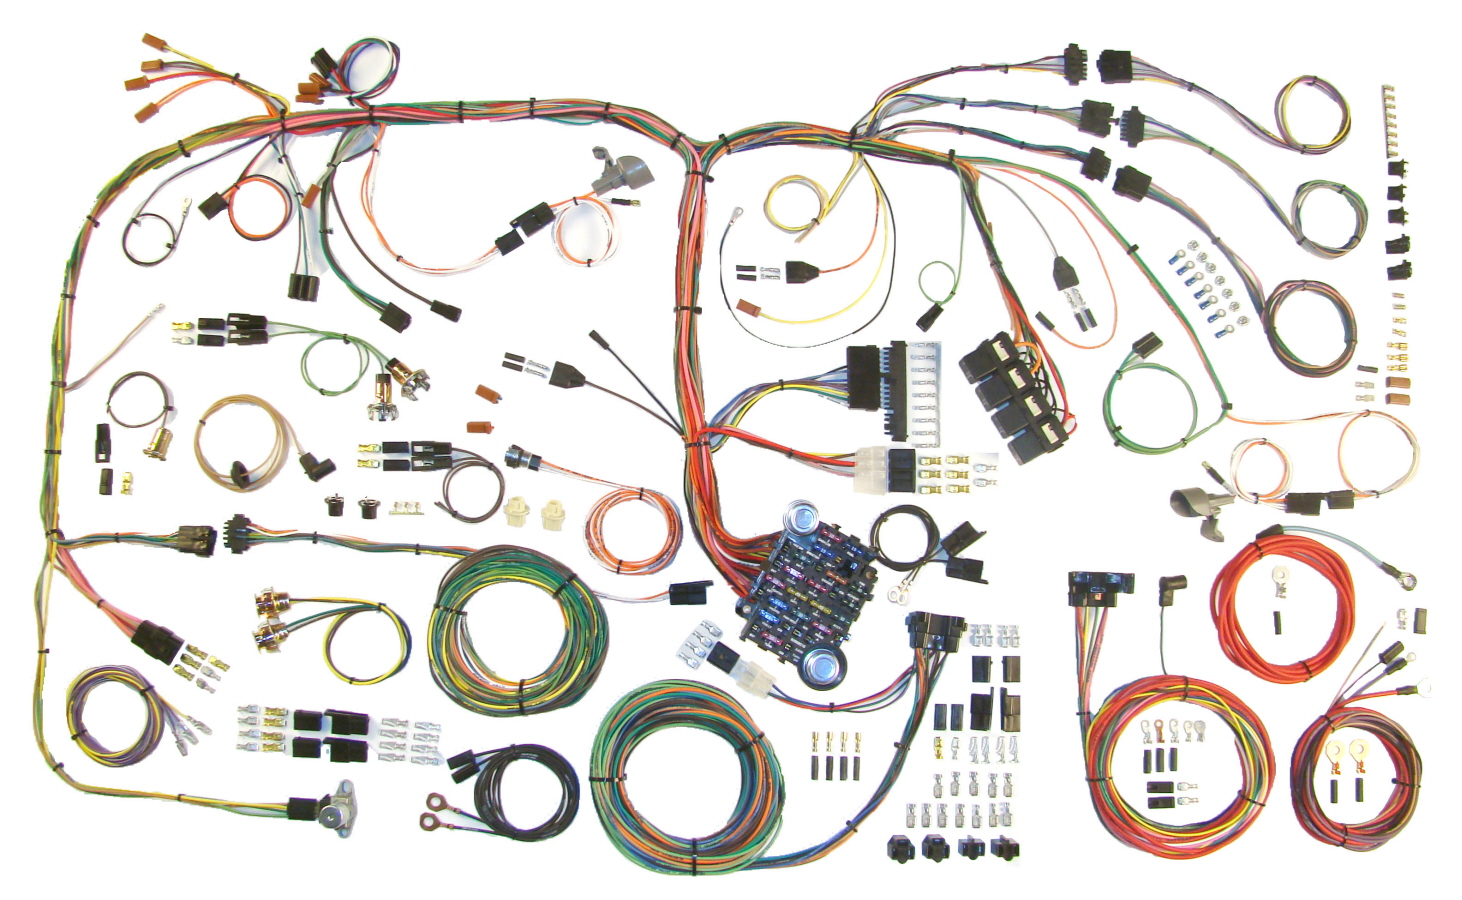 l_510289 70 74 mopar e body classic update wiring harness 510289 mopar wiring harness at edmiracle.co